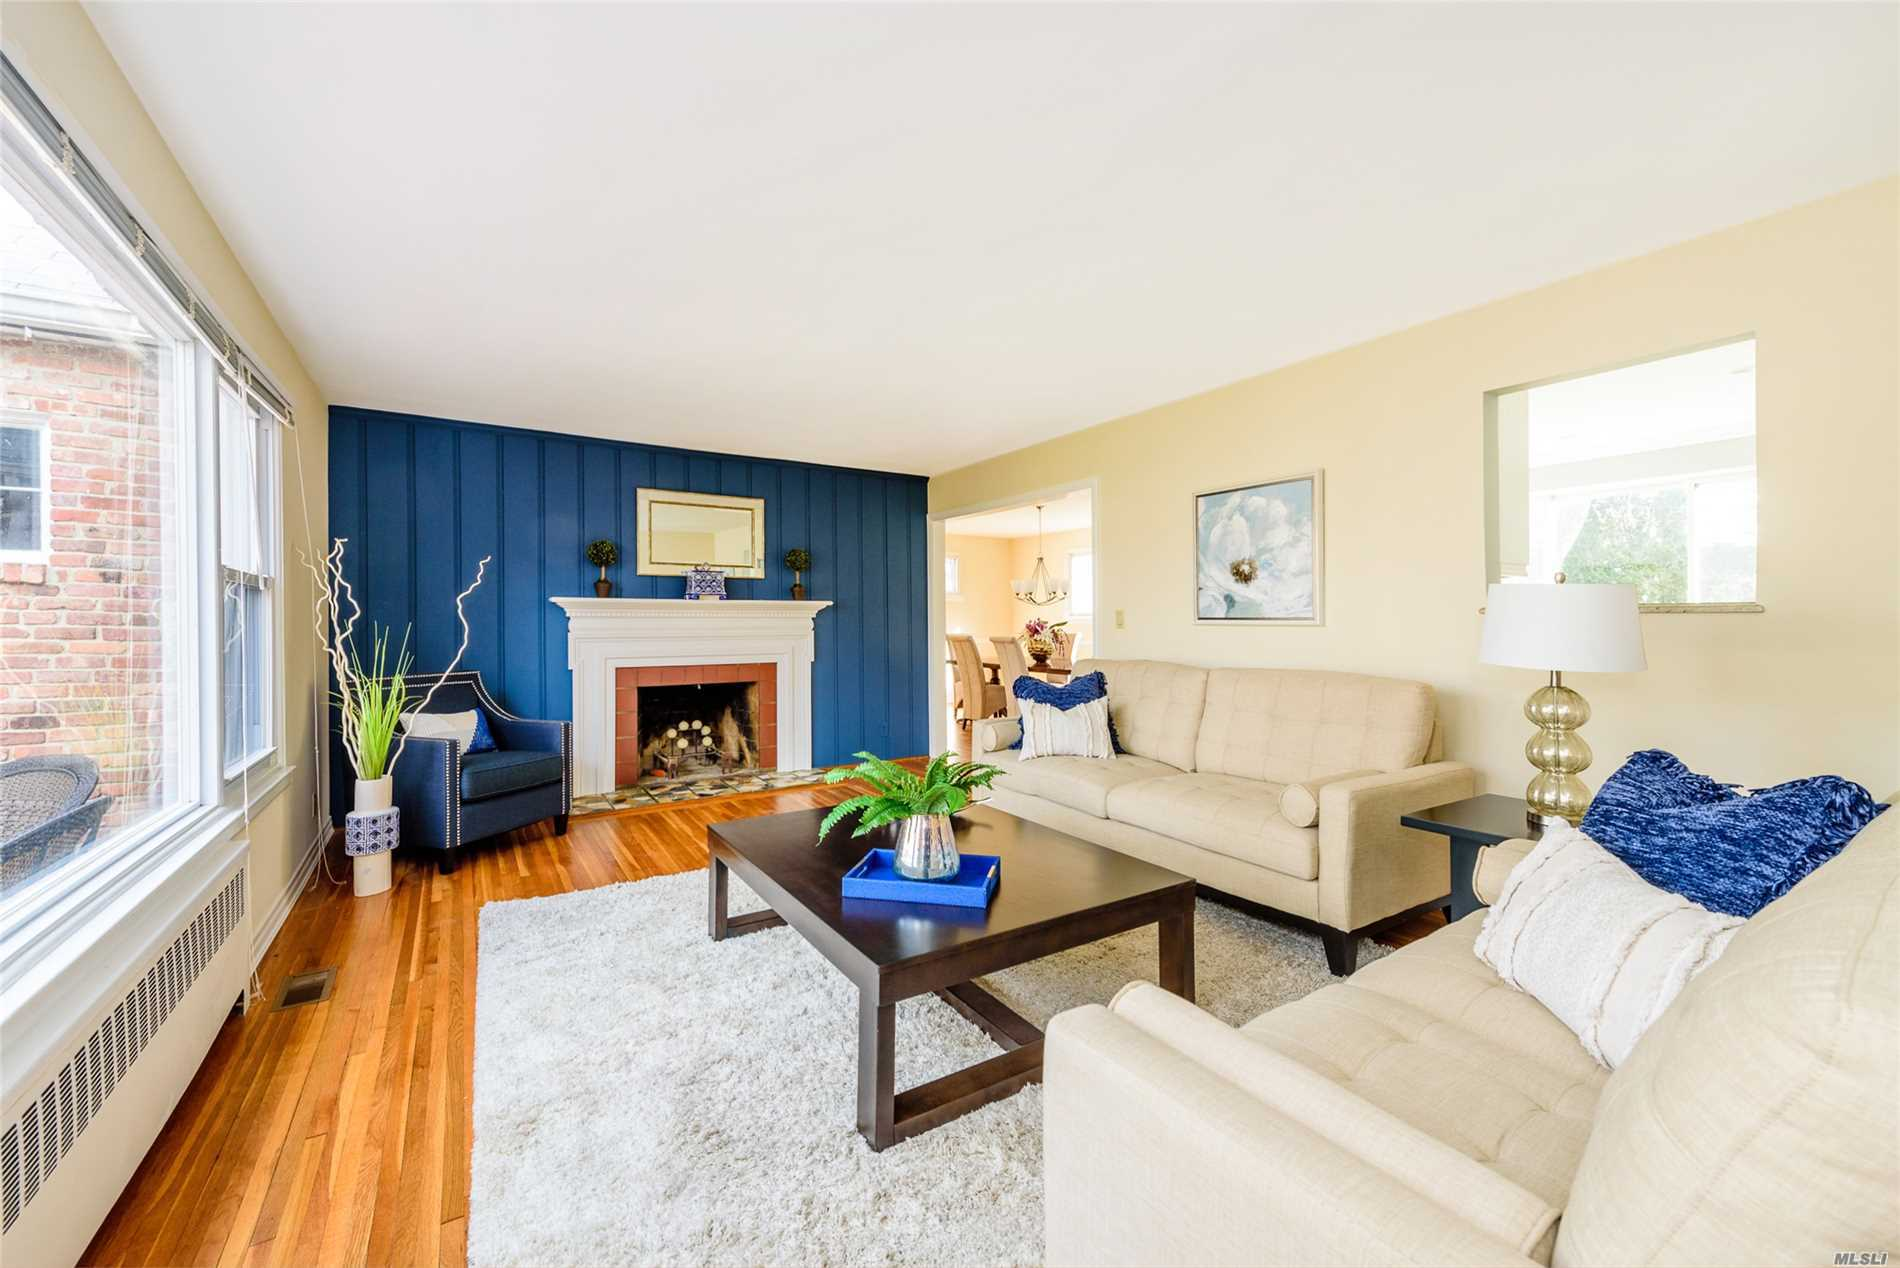 Bright, Spacious Home On Prime Mid-Block Location In Baxter Estates On A Flat Oversized Property! 4 Bedrm, 3 Bath, Features Newly Updated Eik And Bath, Lr W/Fplc, Large Fdr, Hw Floors Throughout, Cac, Igs, Full Basement With Ose. Close To Town & Train.